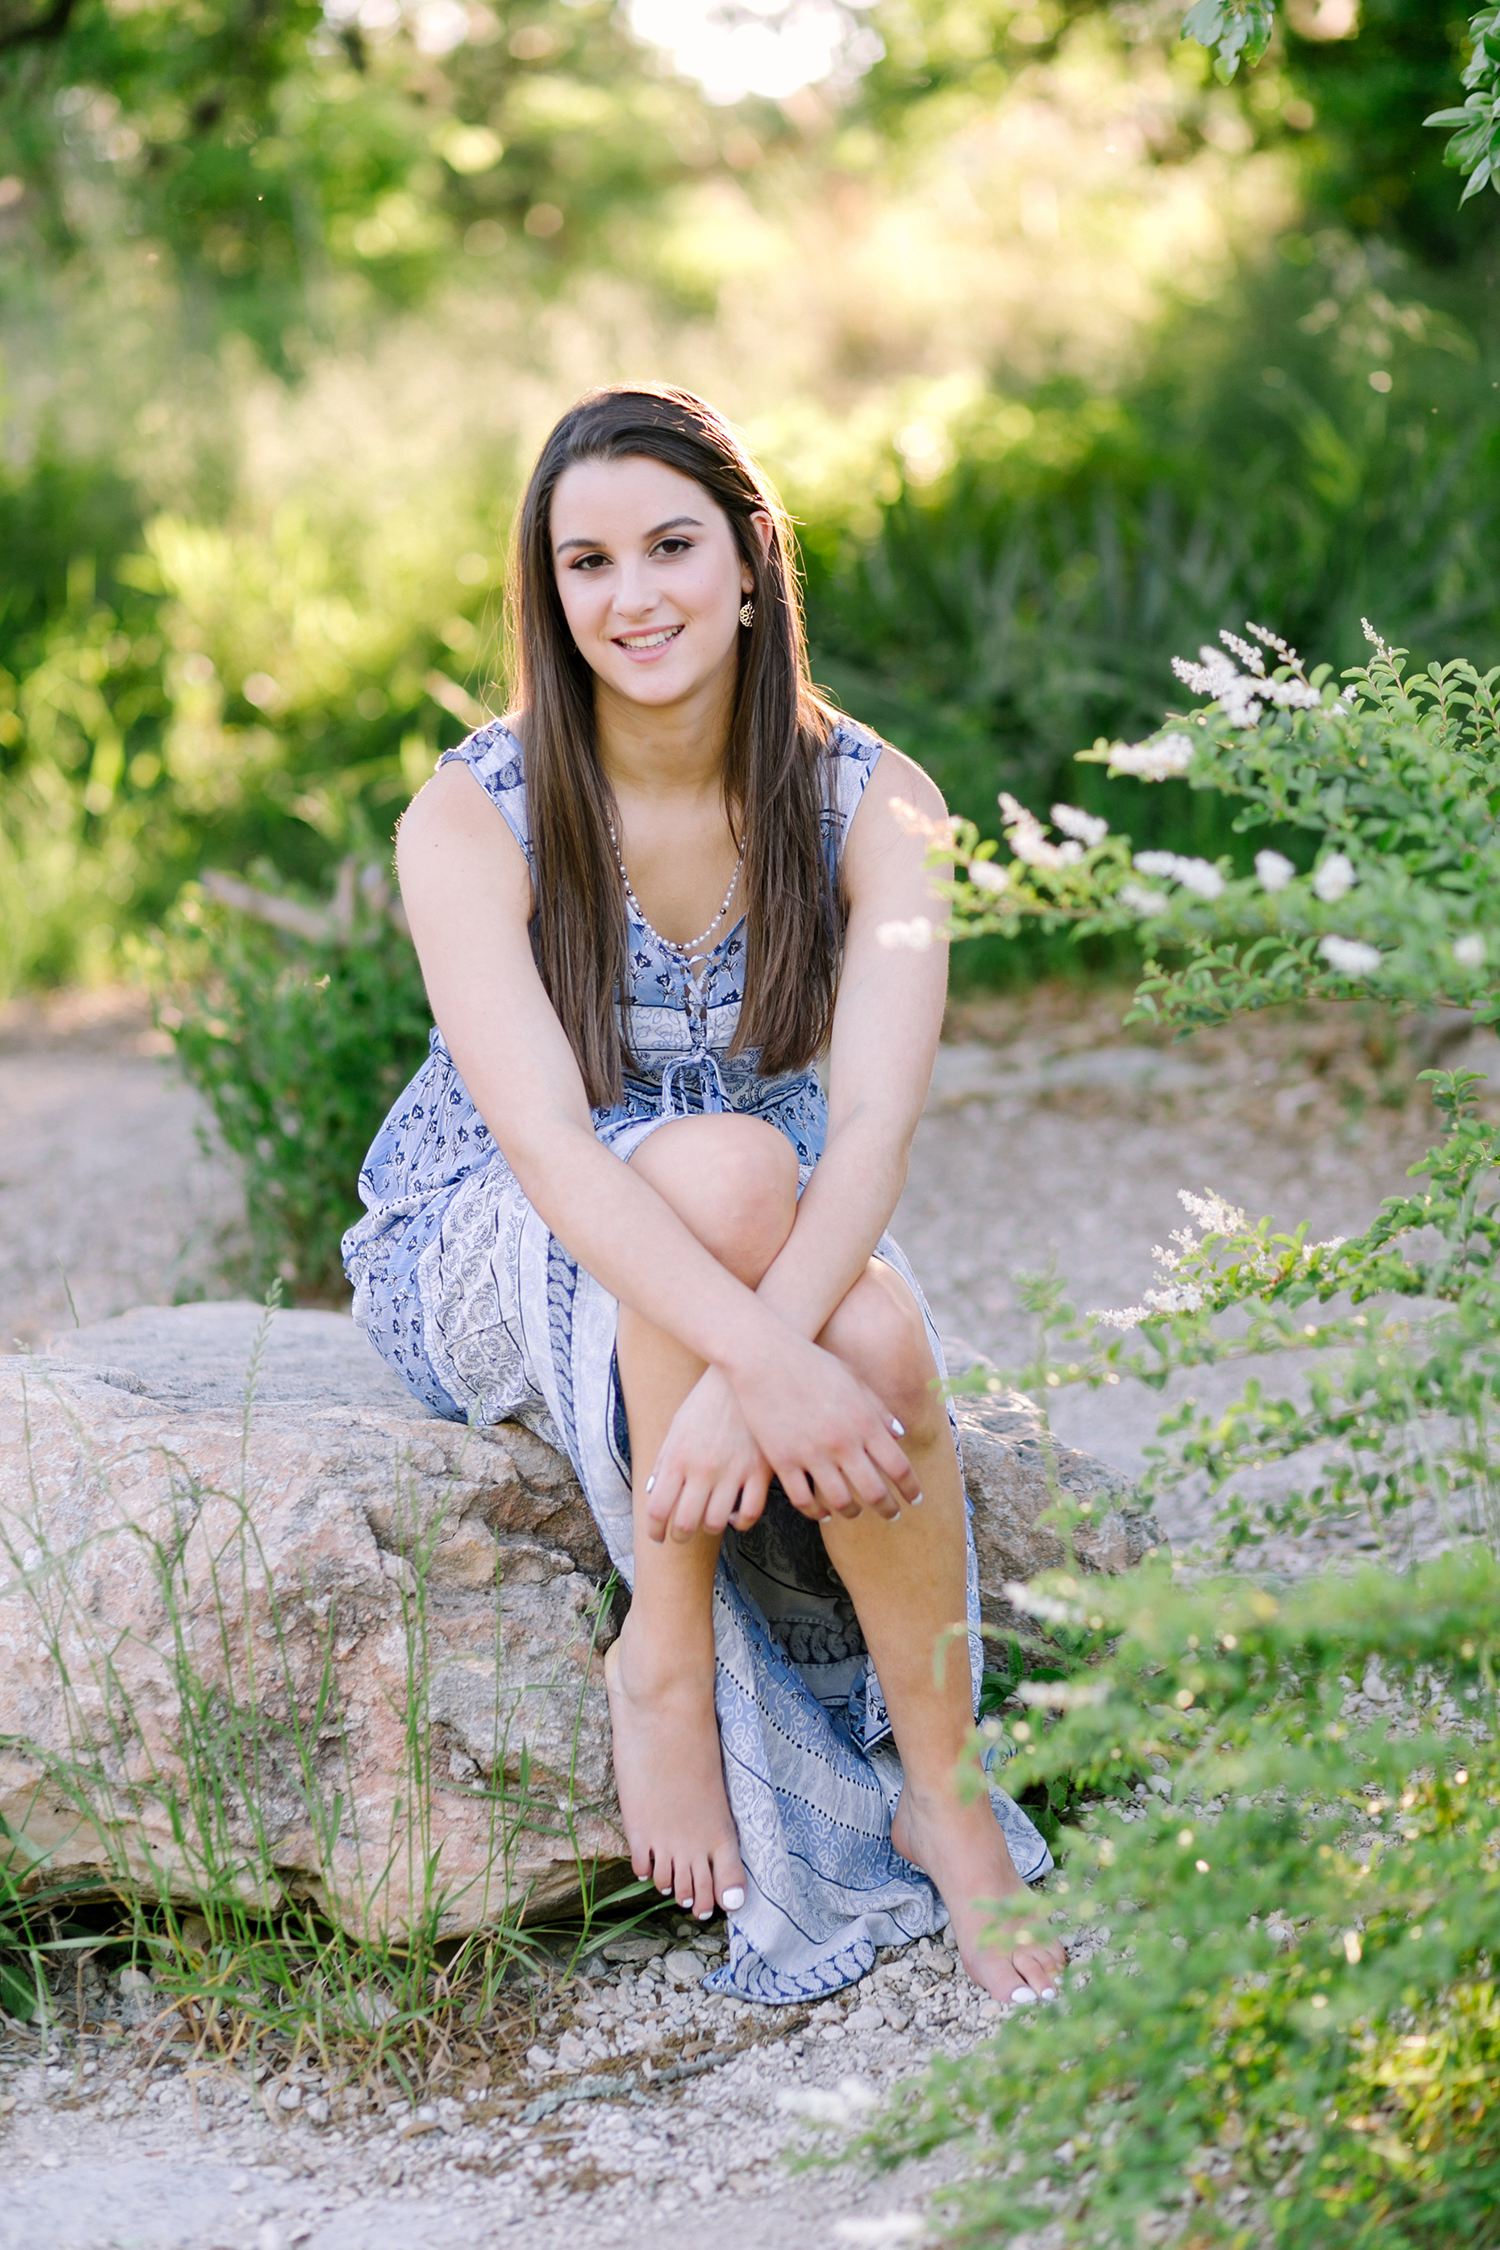 austin-tx-senior-portrait-photographer-06.jpg